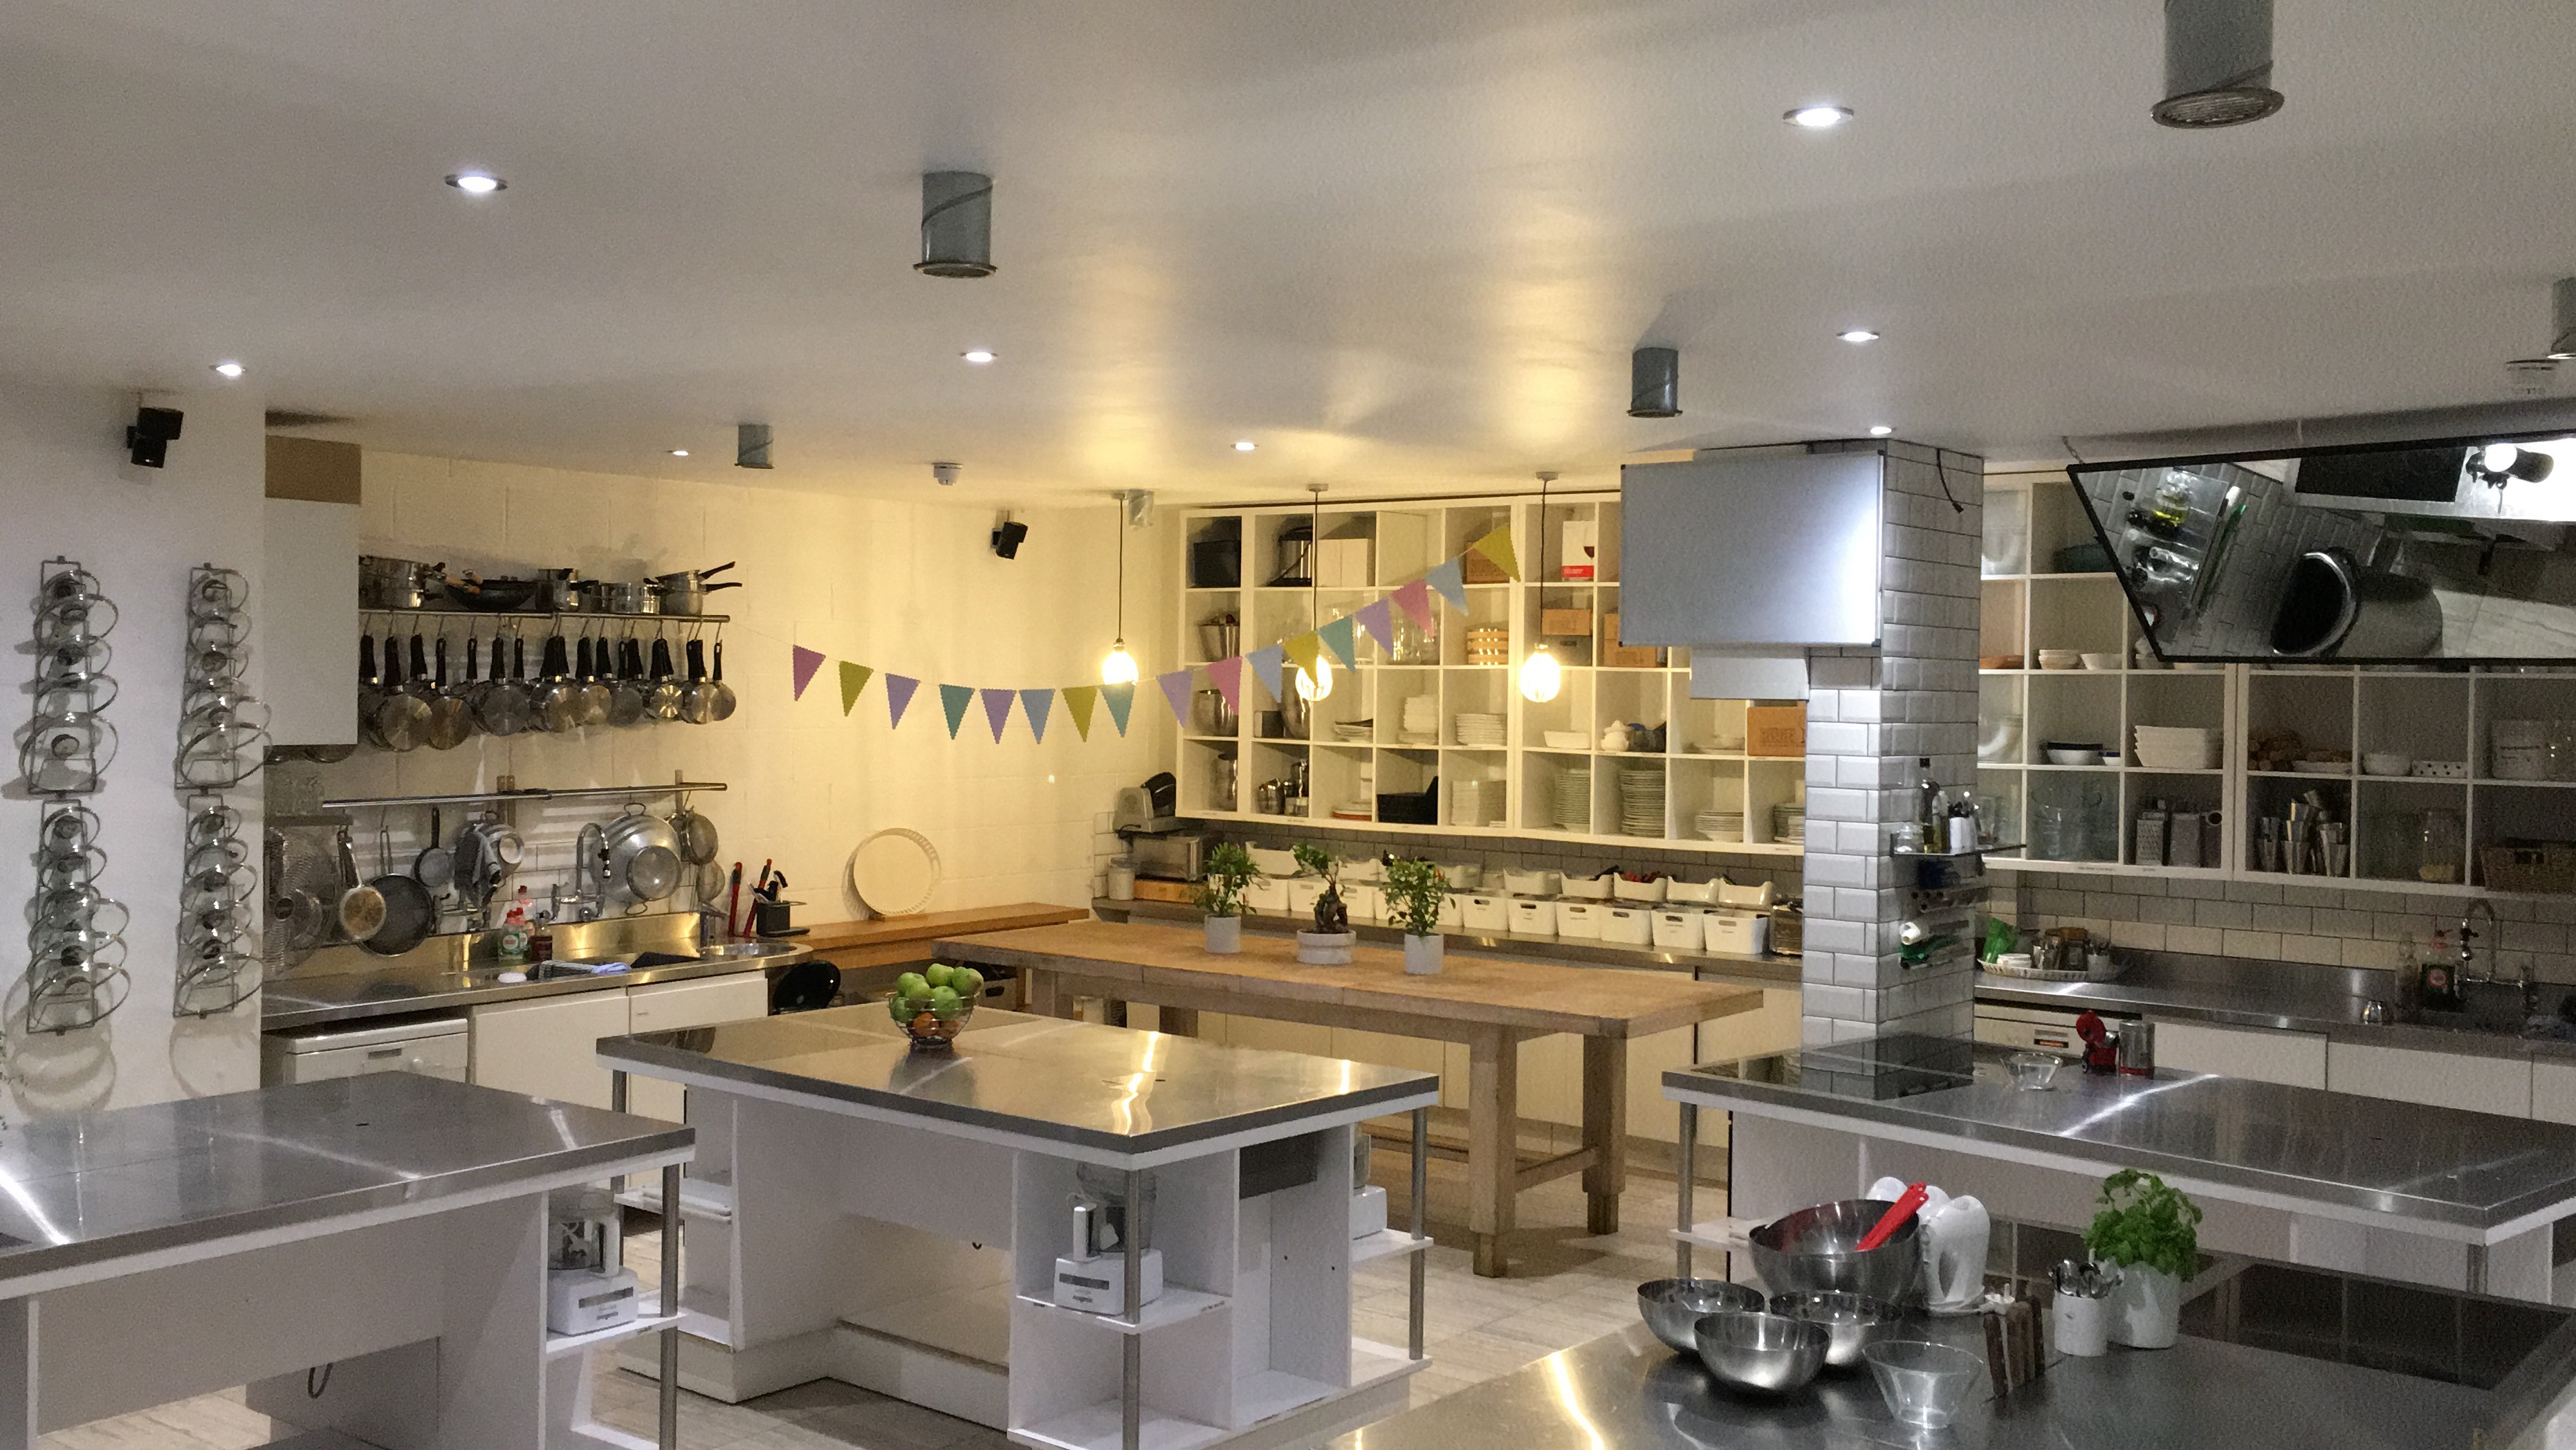 Useful Sauces Cooking Class by The Avenue Cookery School - food in London